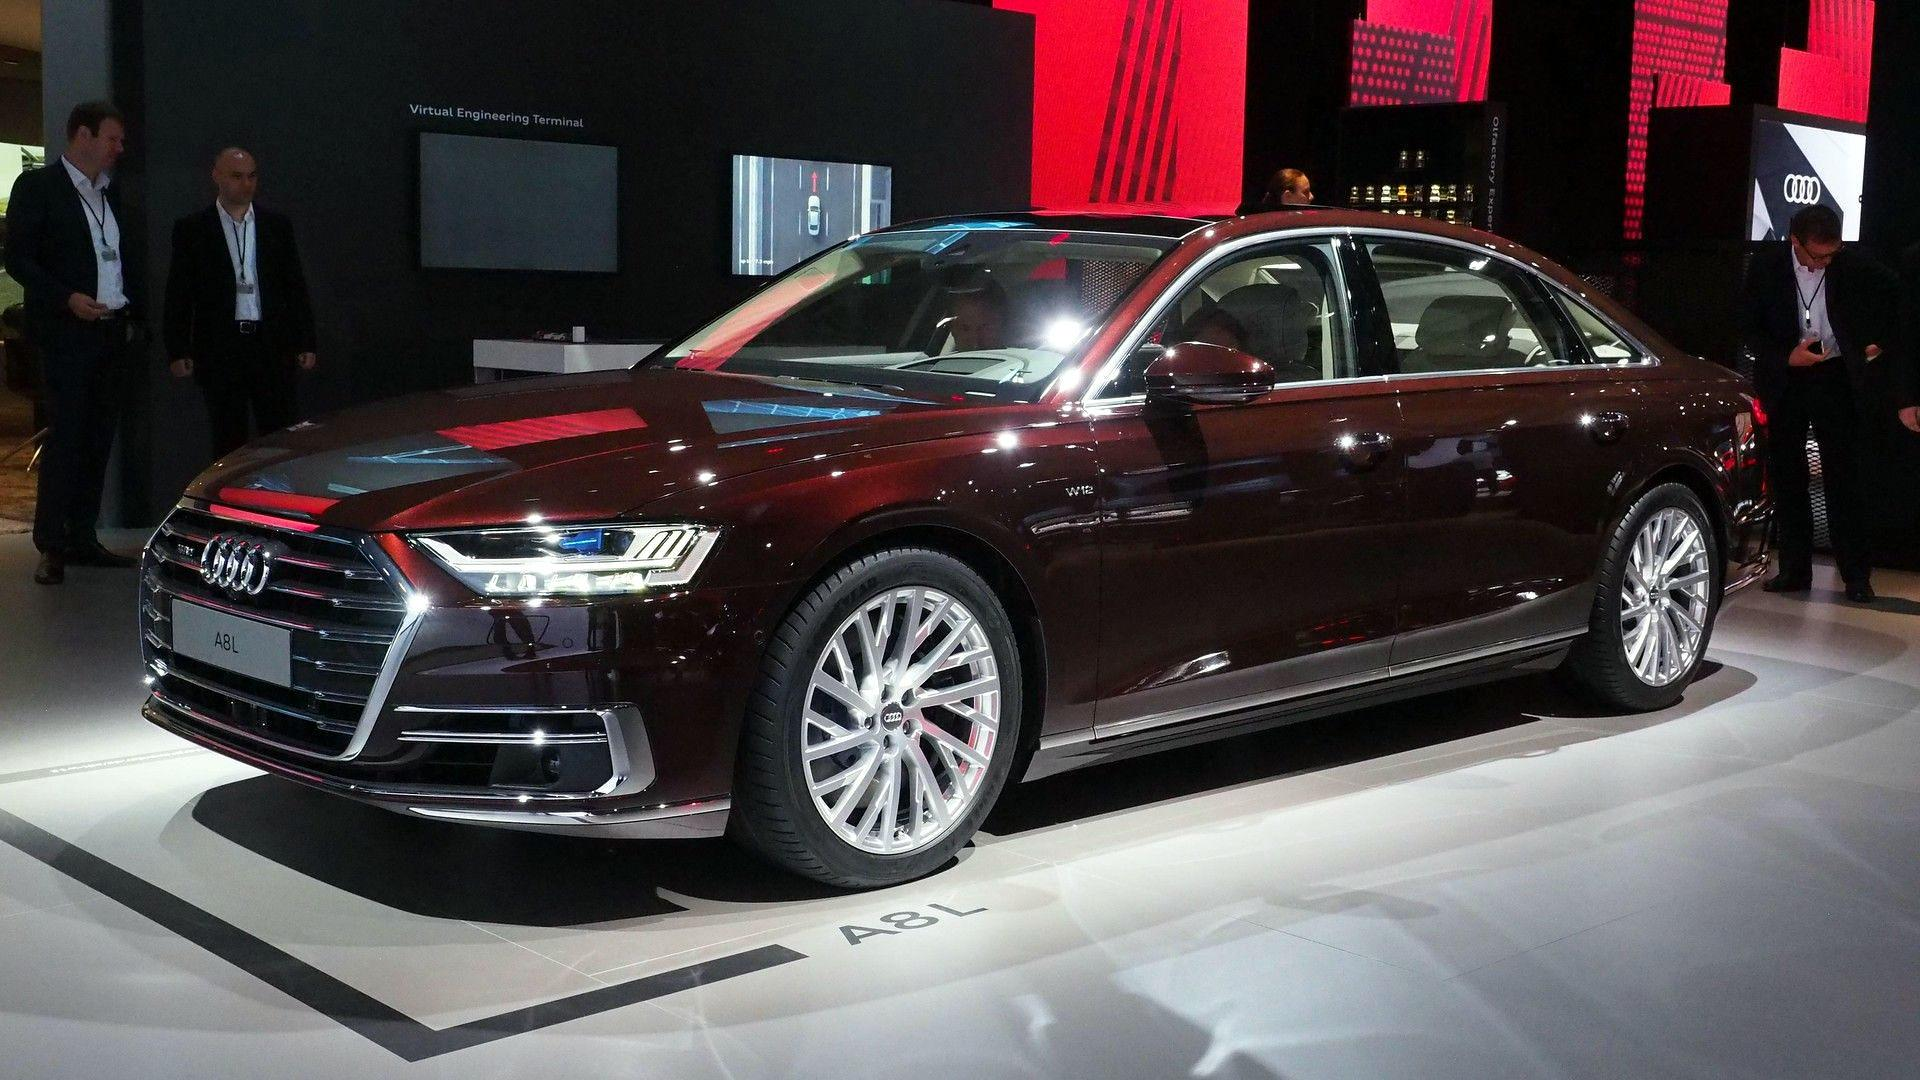 2018 audi 18. contemporary 2018 2018 audi a8 debut vernonchan published september 18 2017 at 1920 1080 in  dekarlovofo image collections in e